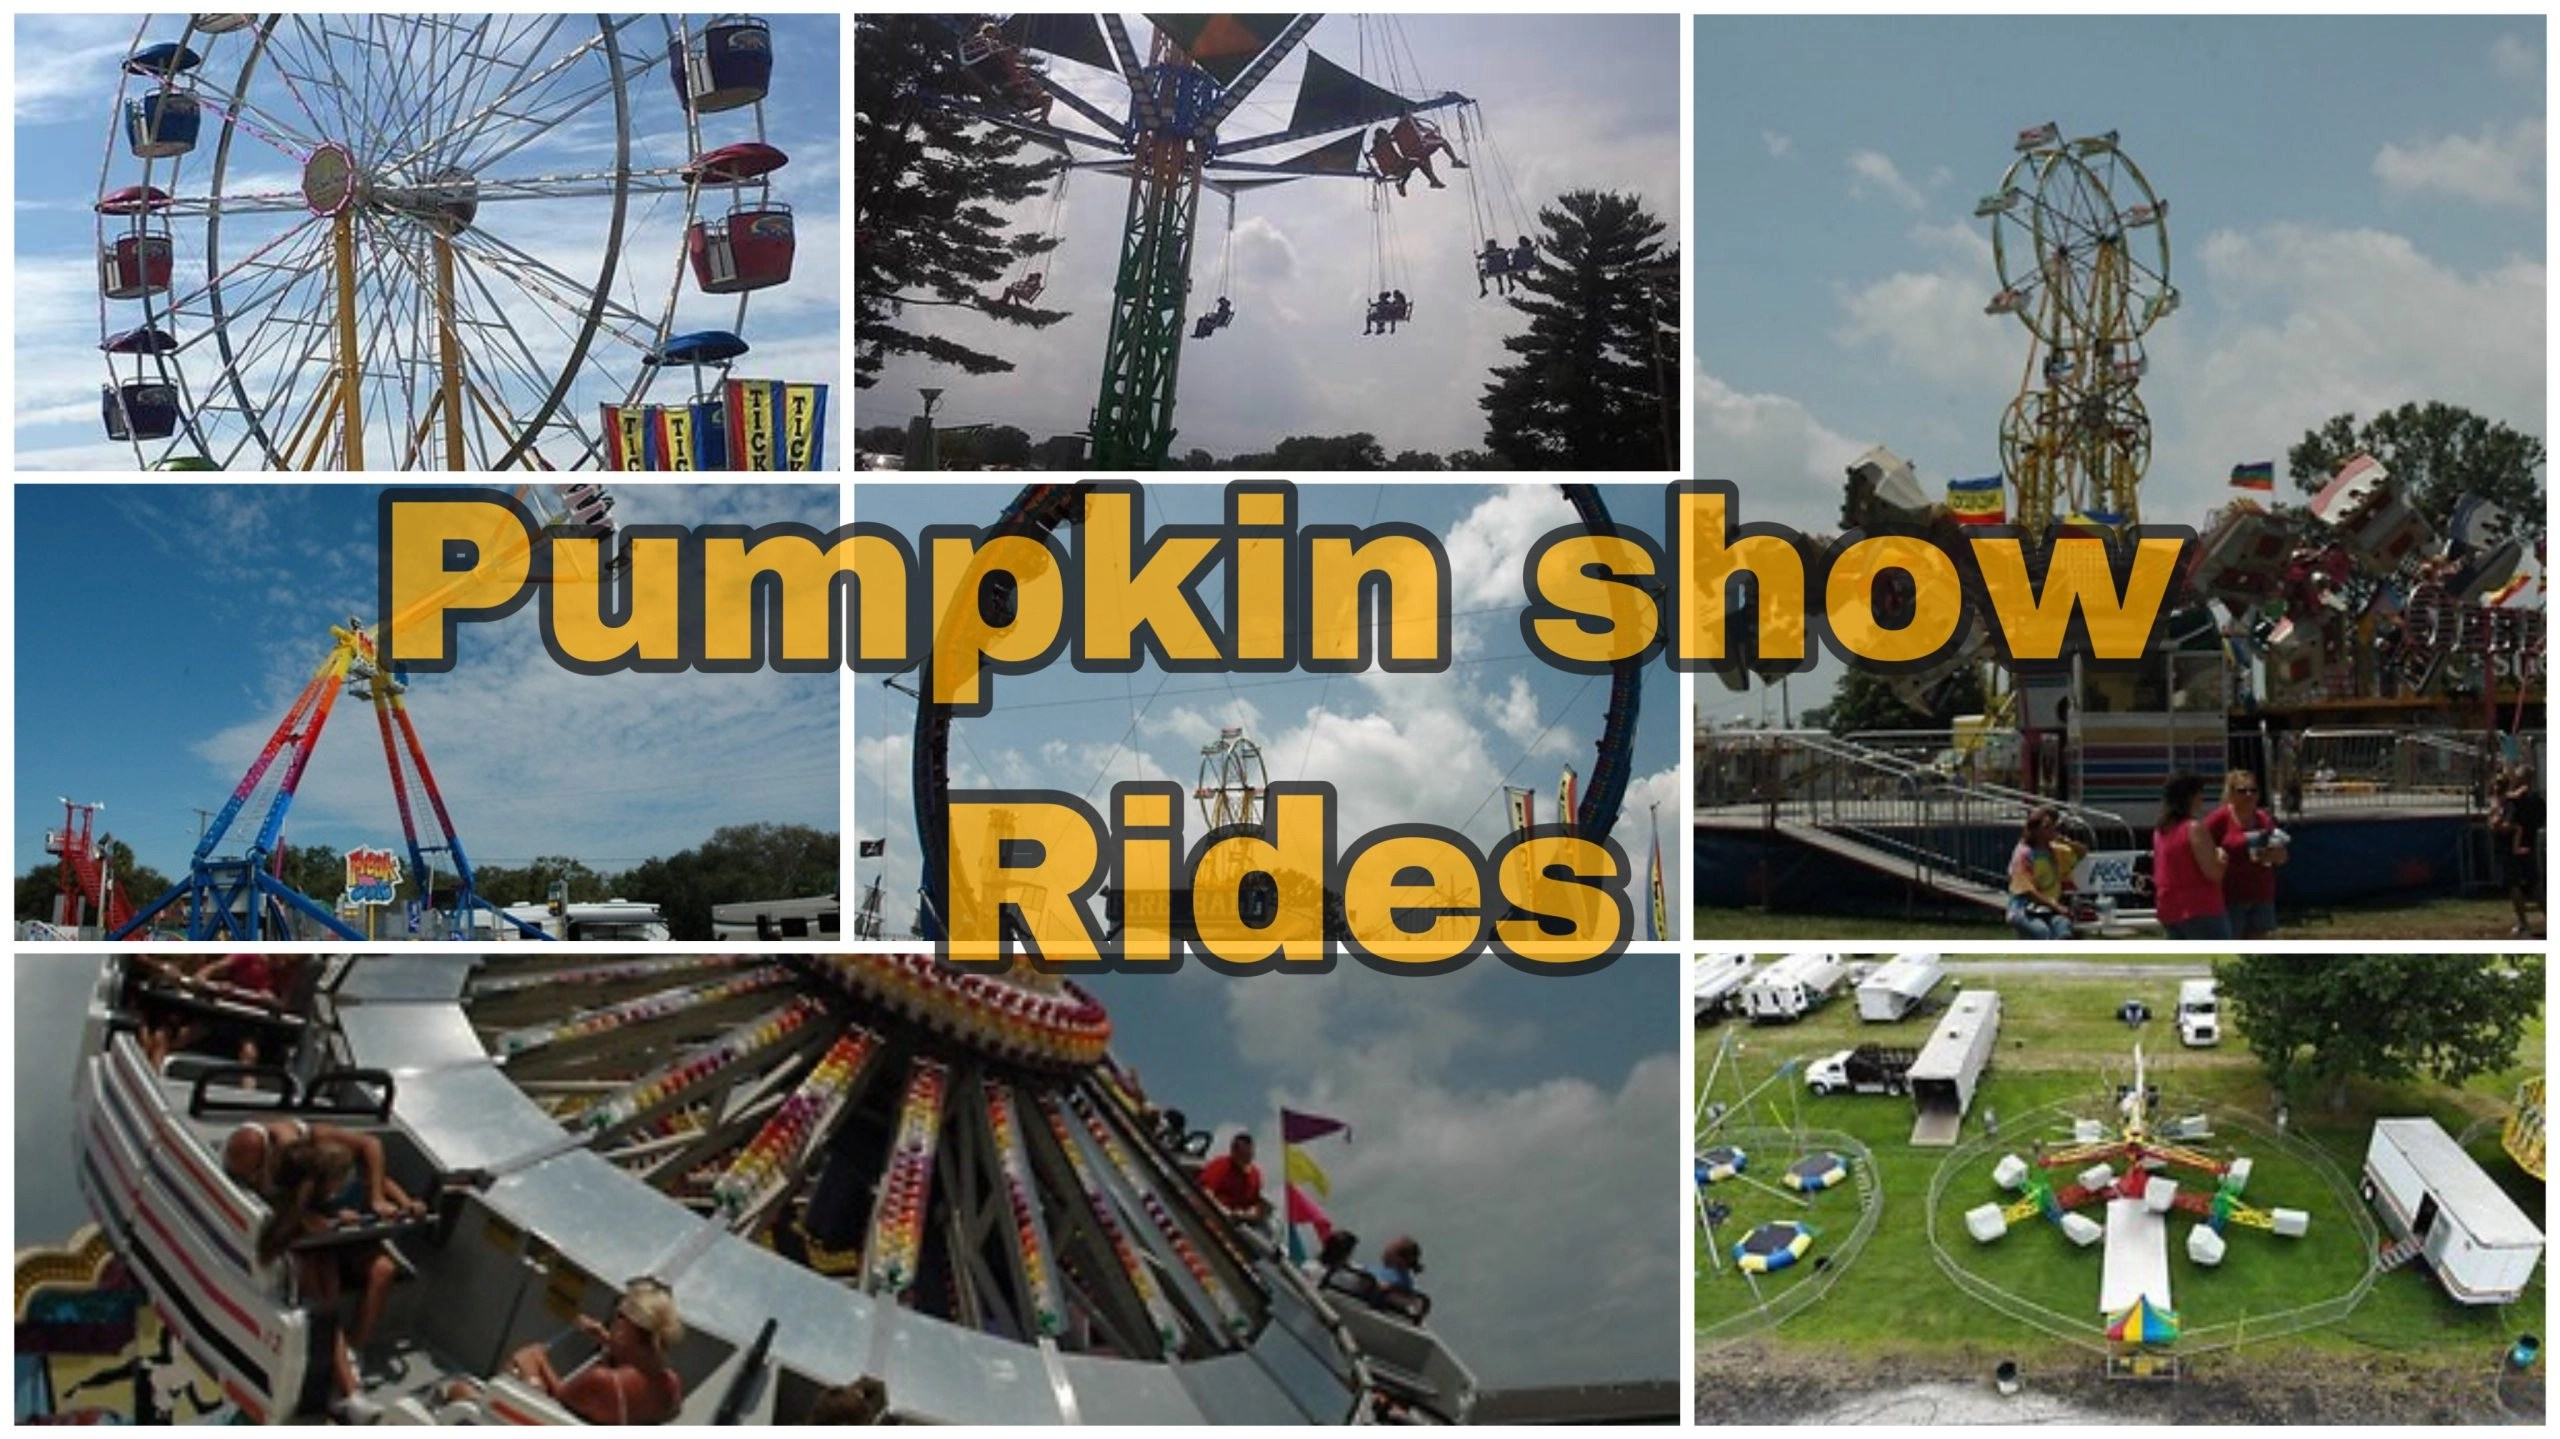 Circleville Pumpkin Show Will Have New Thrill Rides this Year